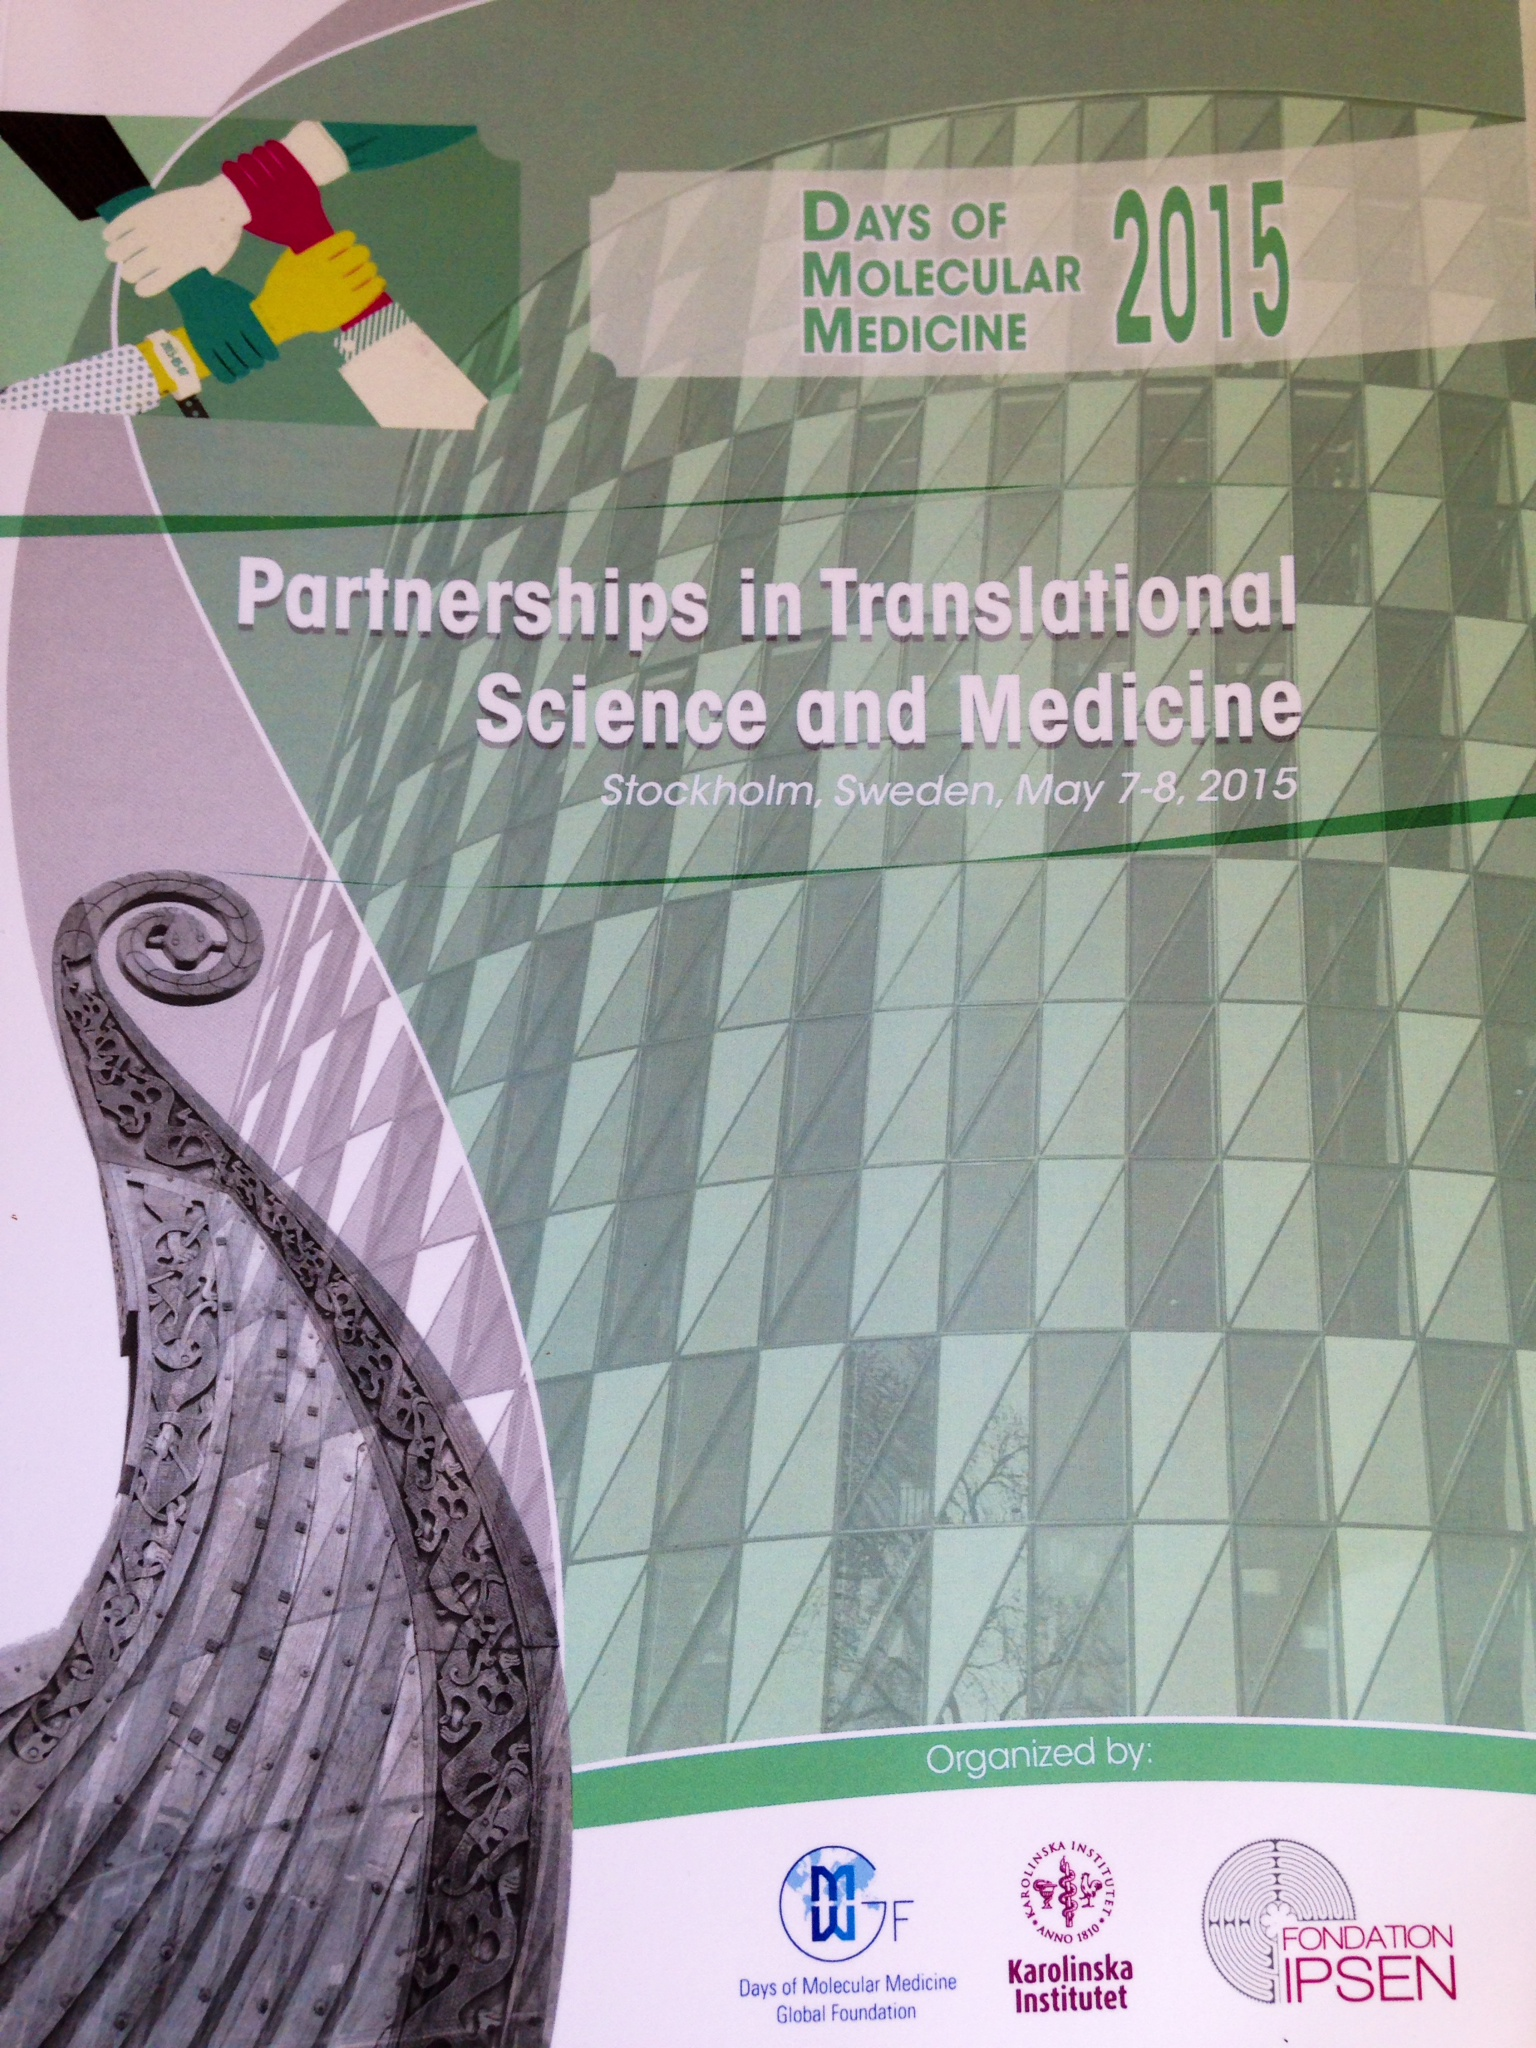 days of molecular medicine translational science and booklet photo